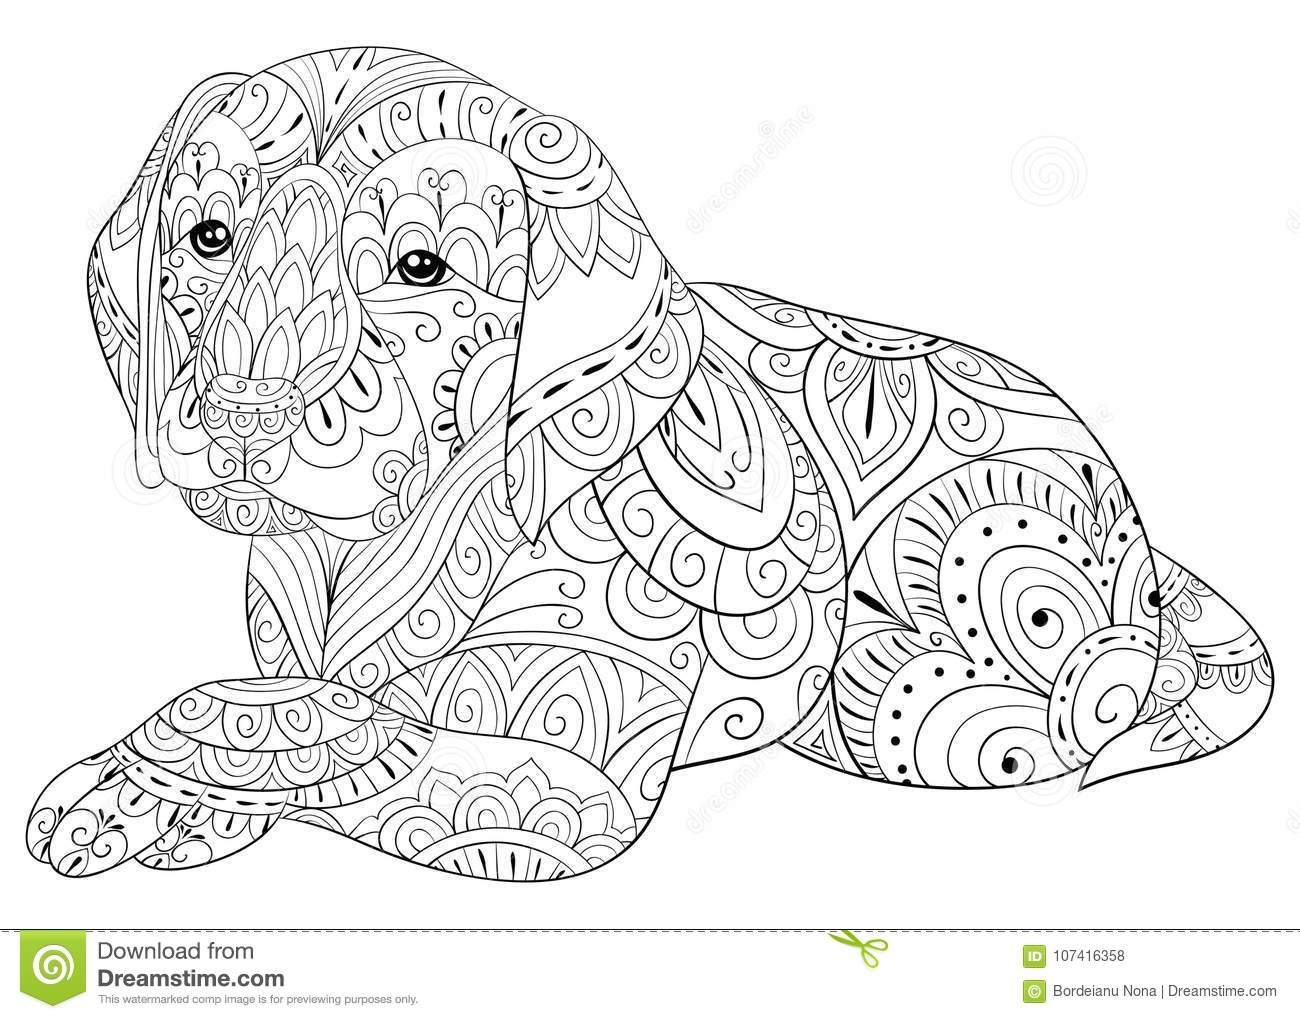 Adult Coloring Page A Cute Dog For Relaxing Zen Art Style Illustration Stock Vector Illustration Of Illustrationposterwallpaper Design 107416358